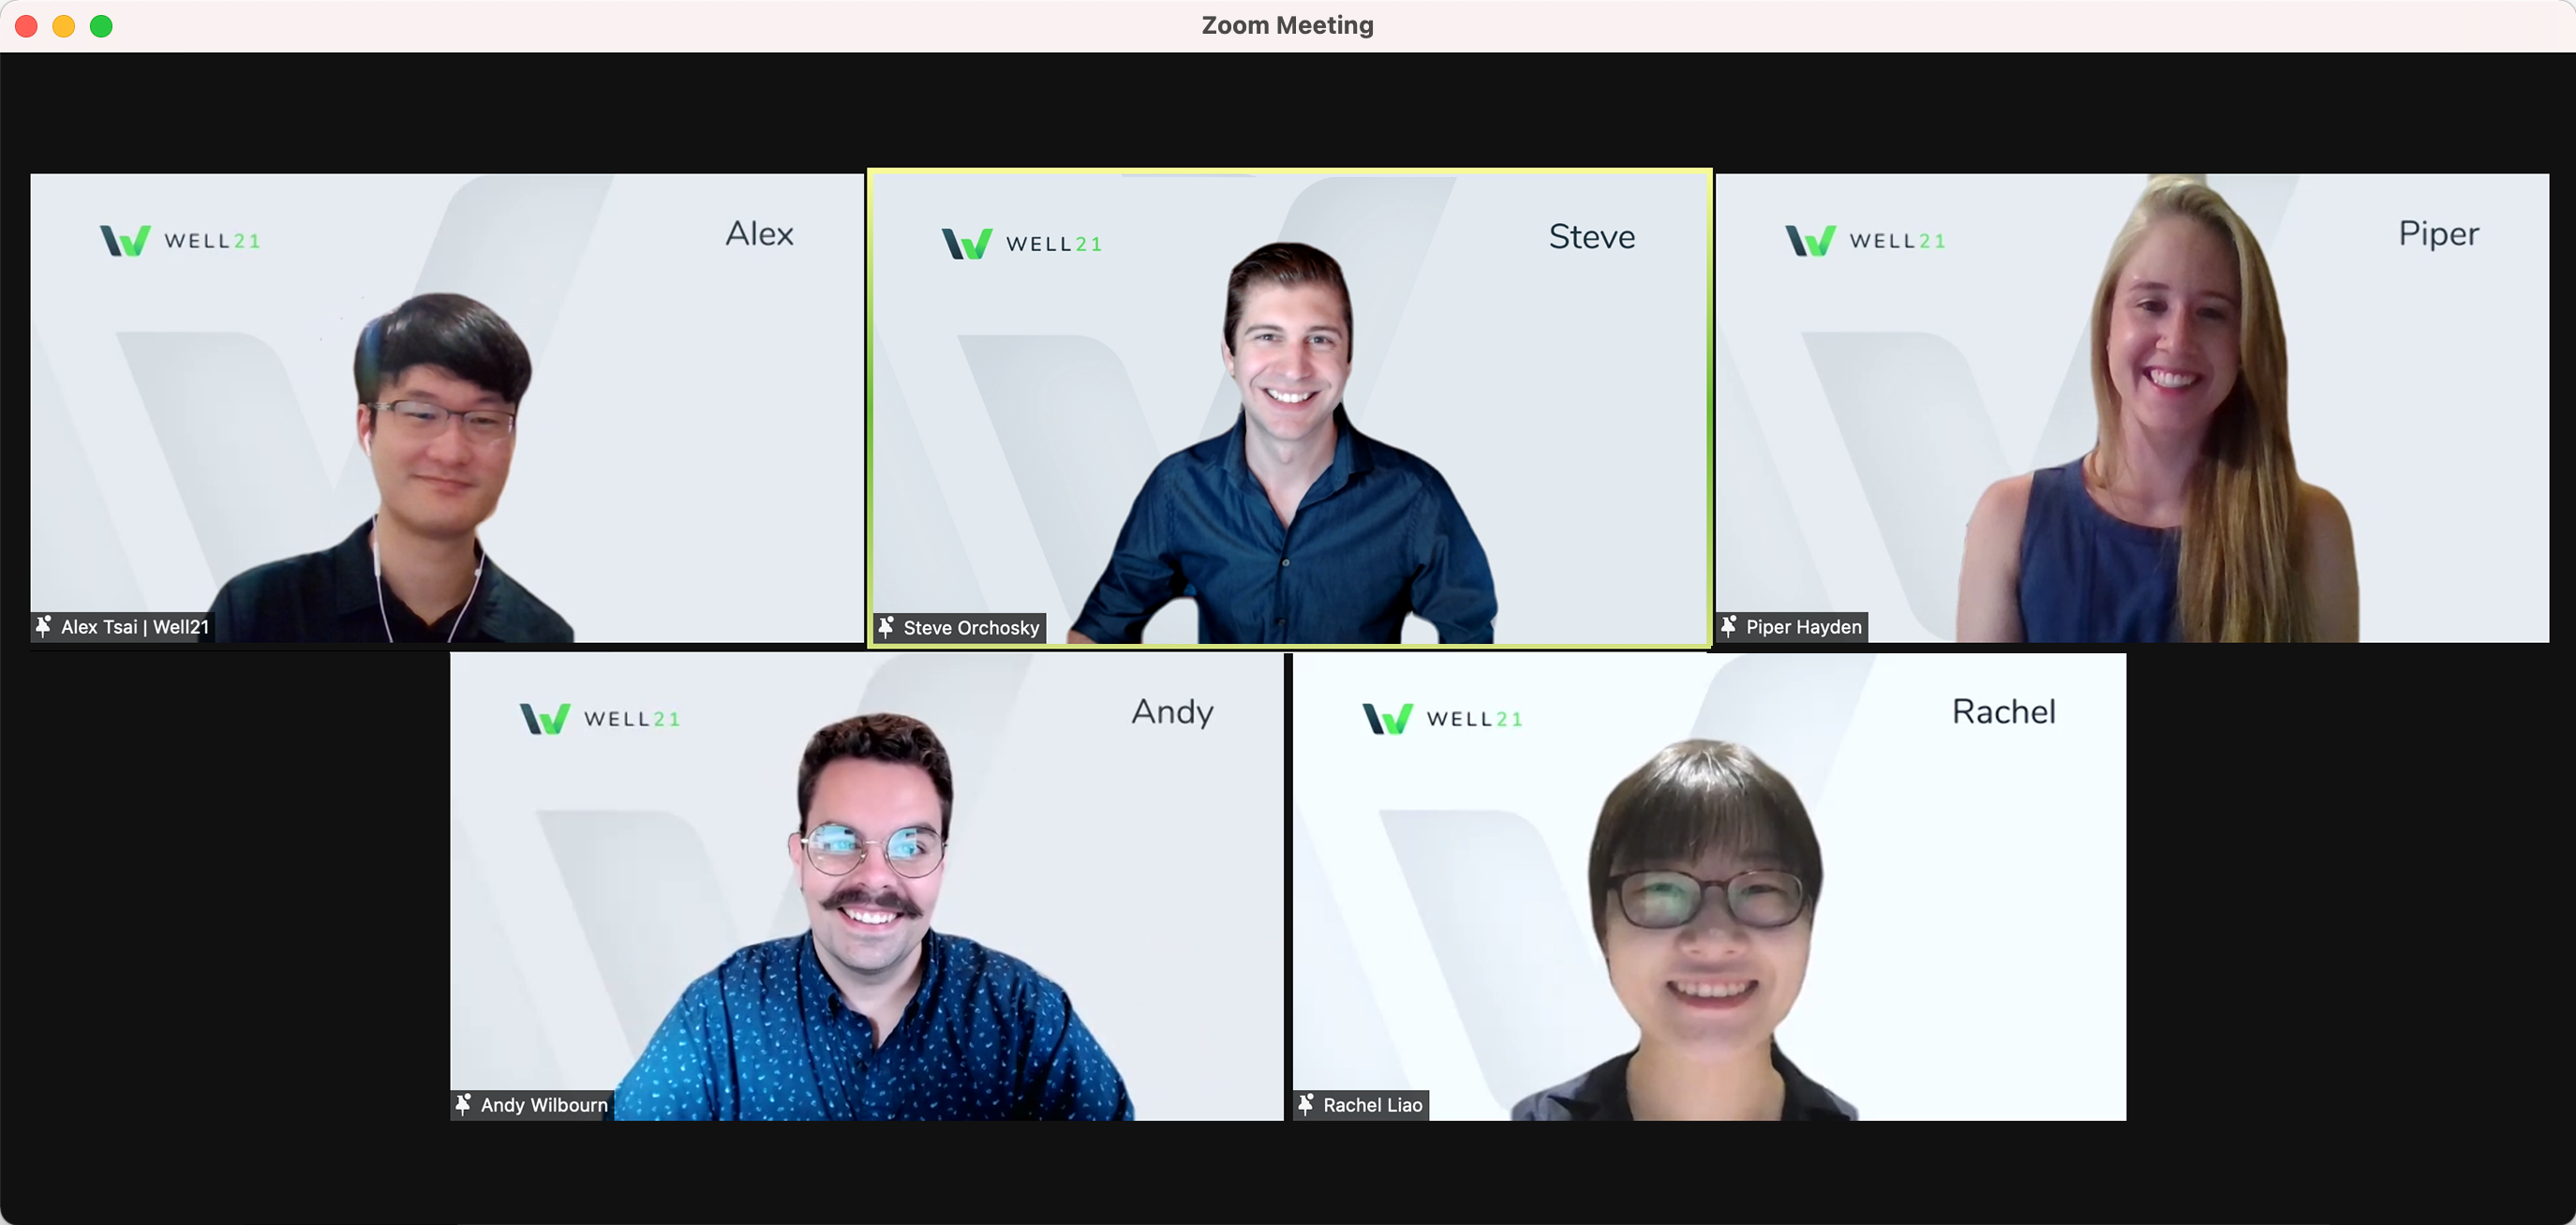 Virtual team photo of 5 students on Zoom